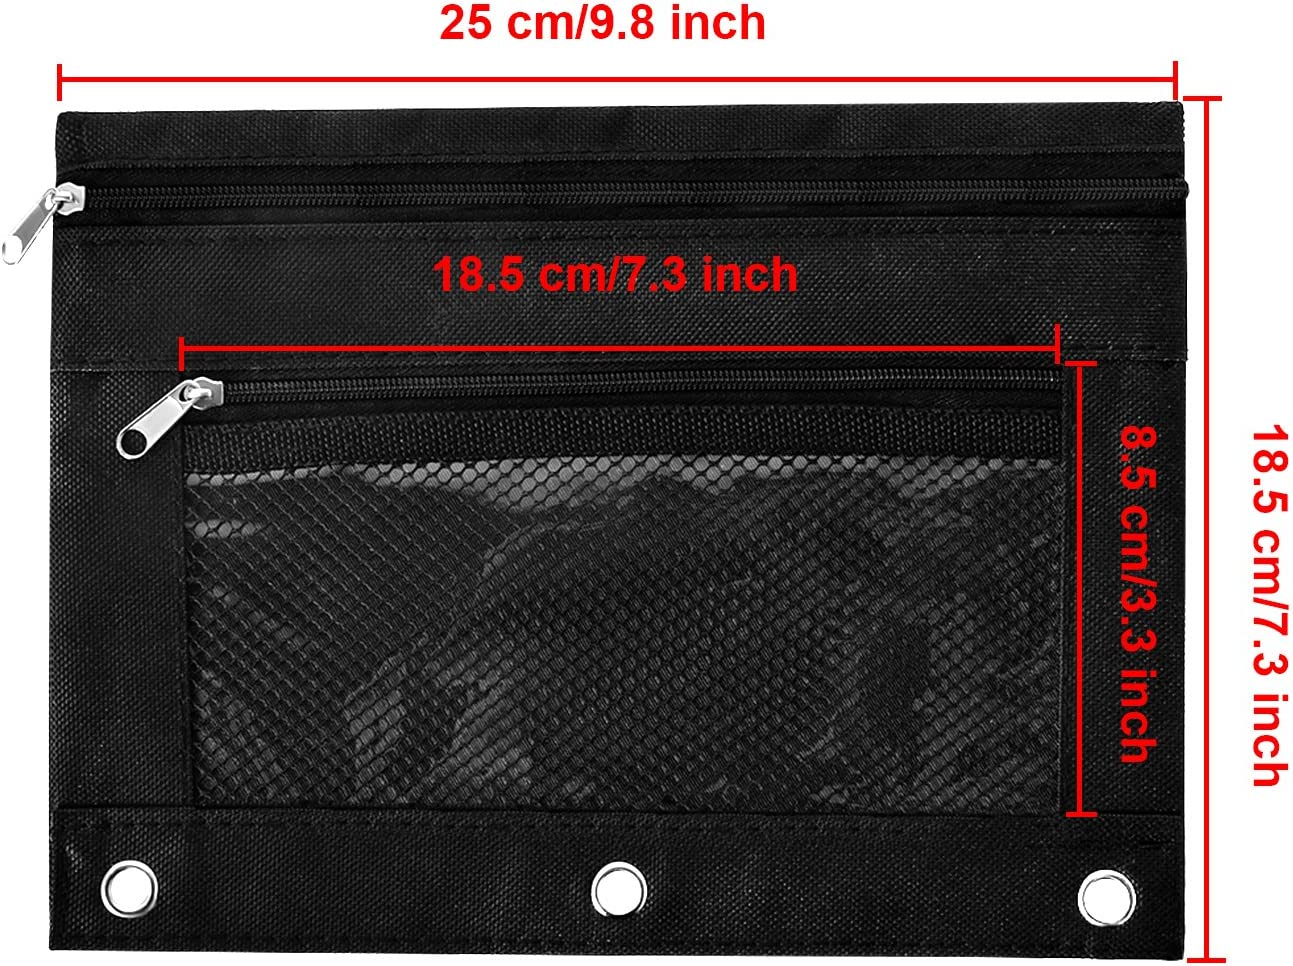 Black 3 TecUnite 3-Ring Pen Pencil Pouch Zipper Pencil Case with Mesh Window for Office Supplies